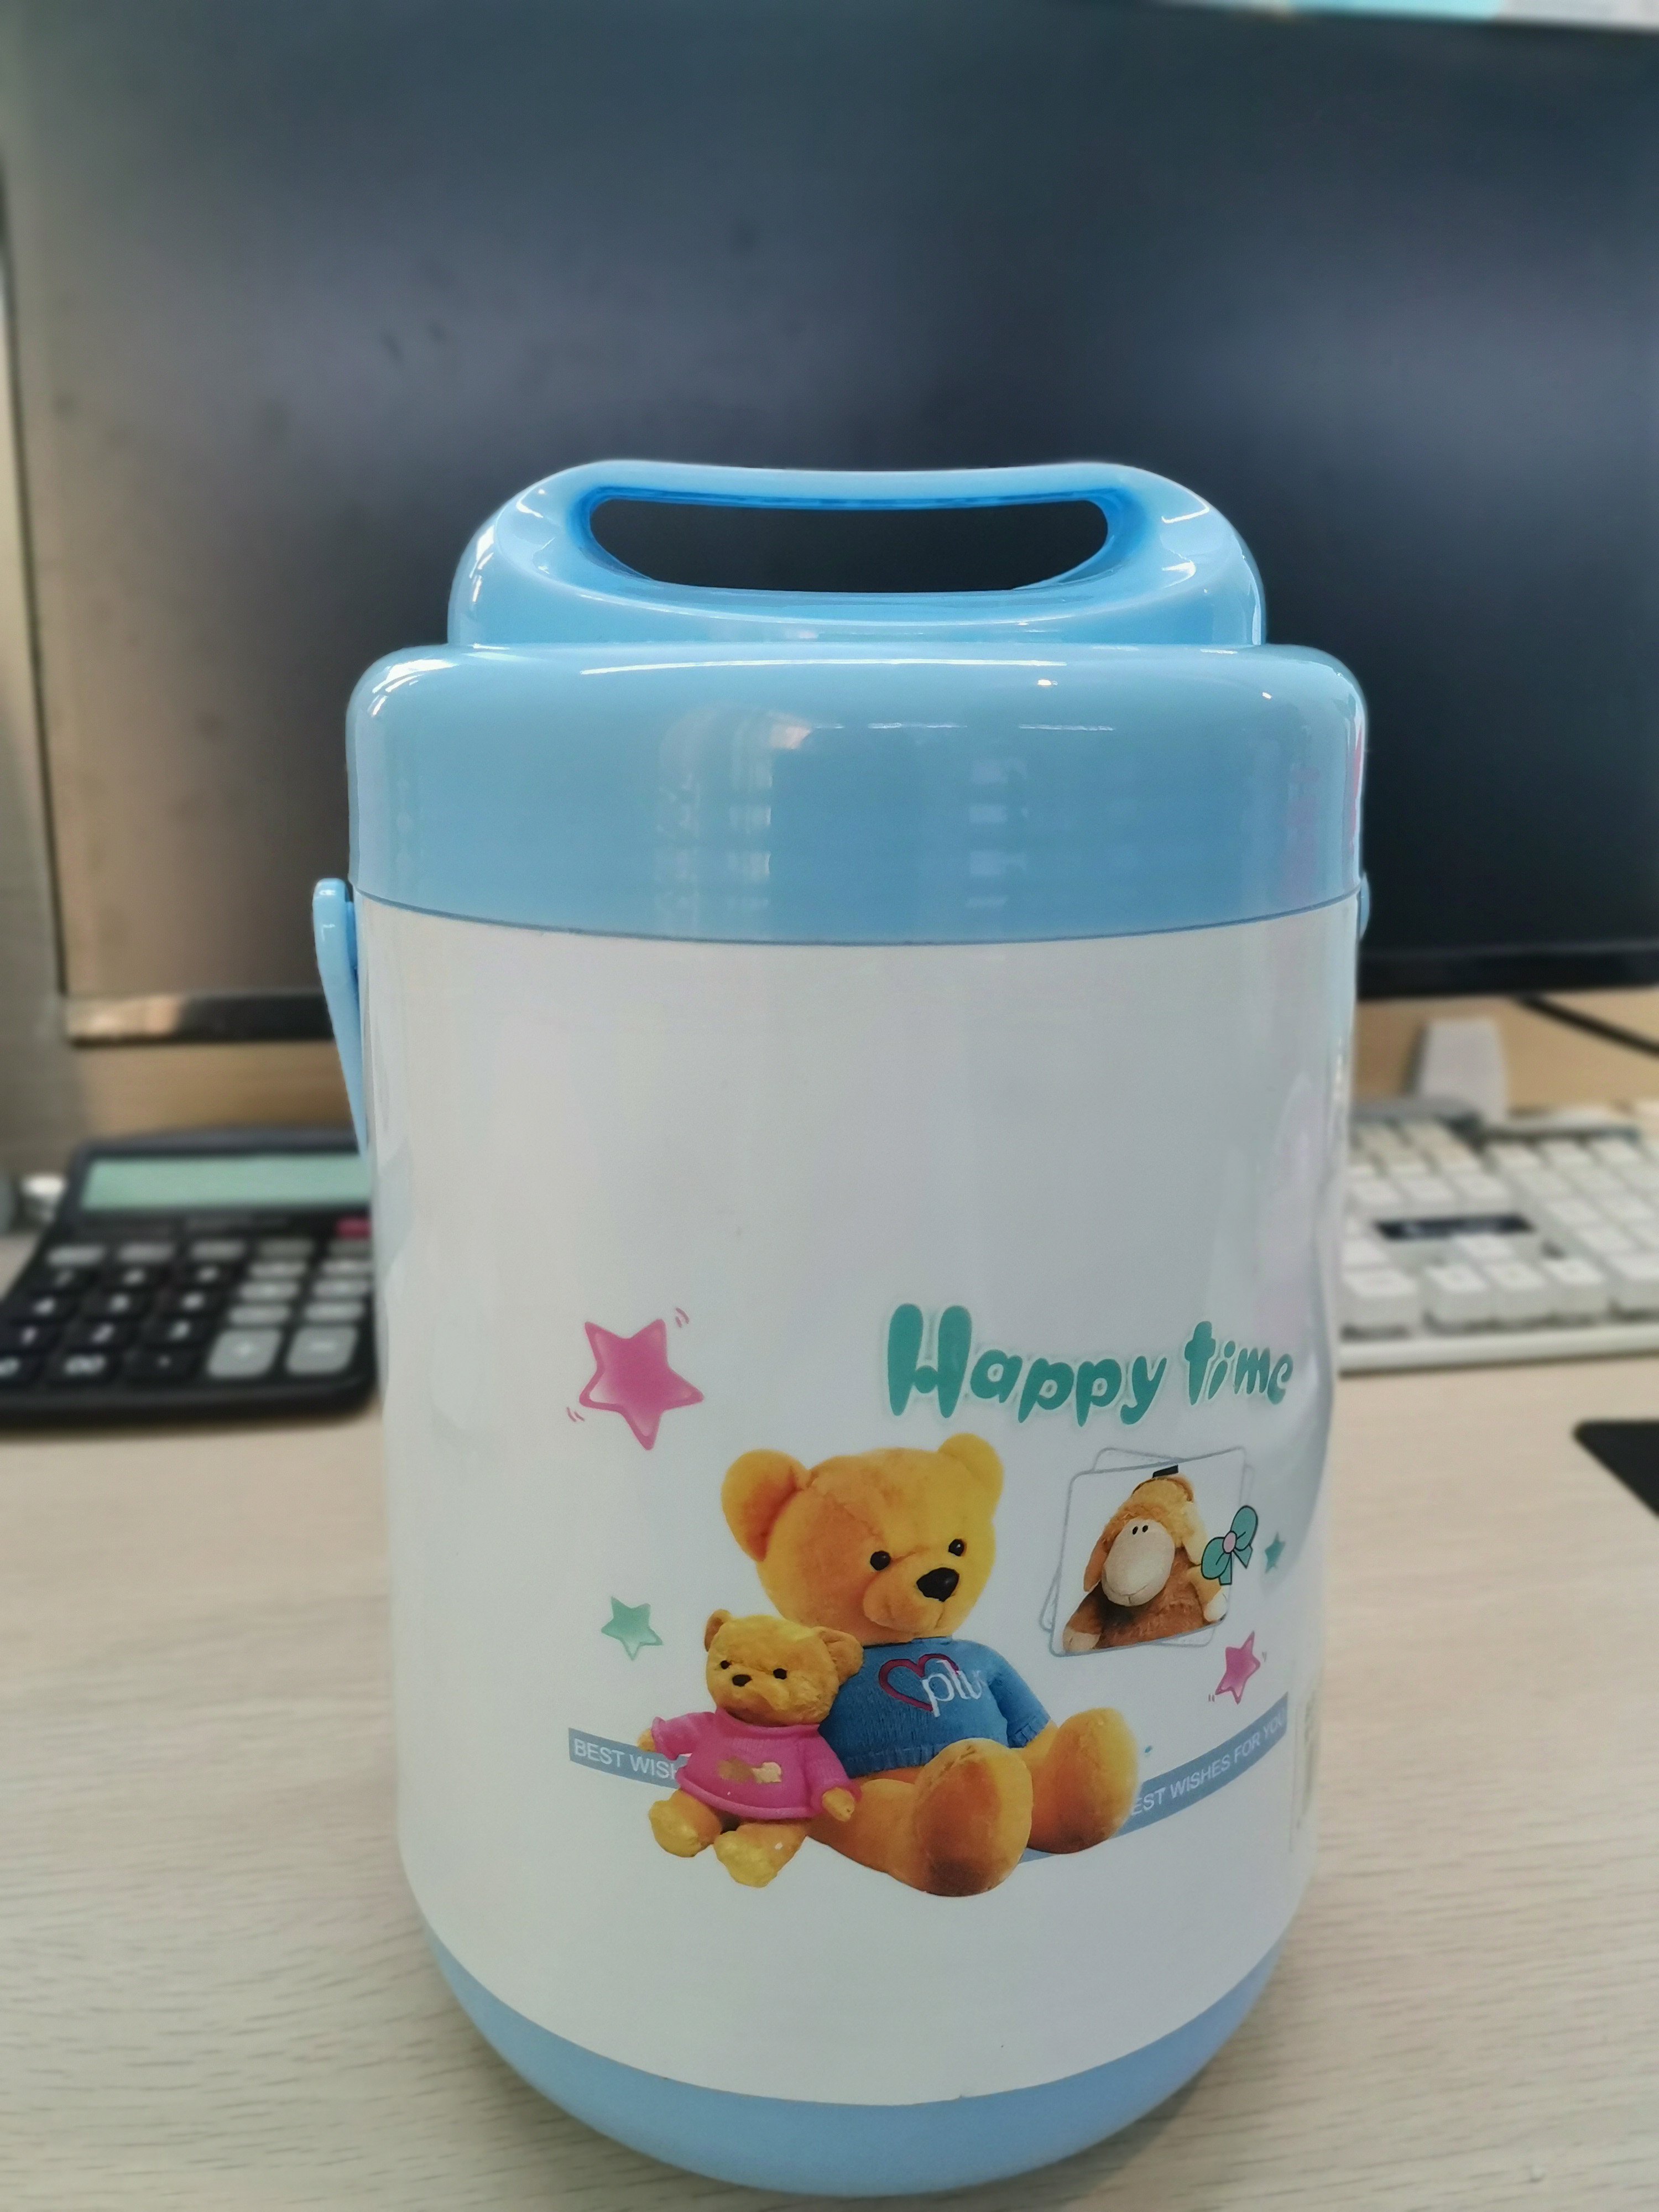 ShiniUni Lunch Box Thermoses Stainless Steel Container Insulated Food Storage Leak Proof Design